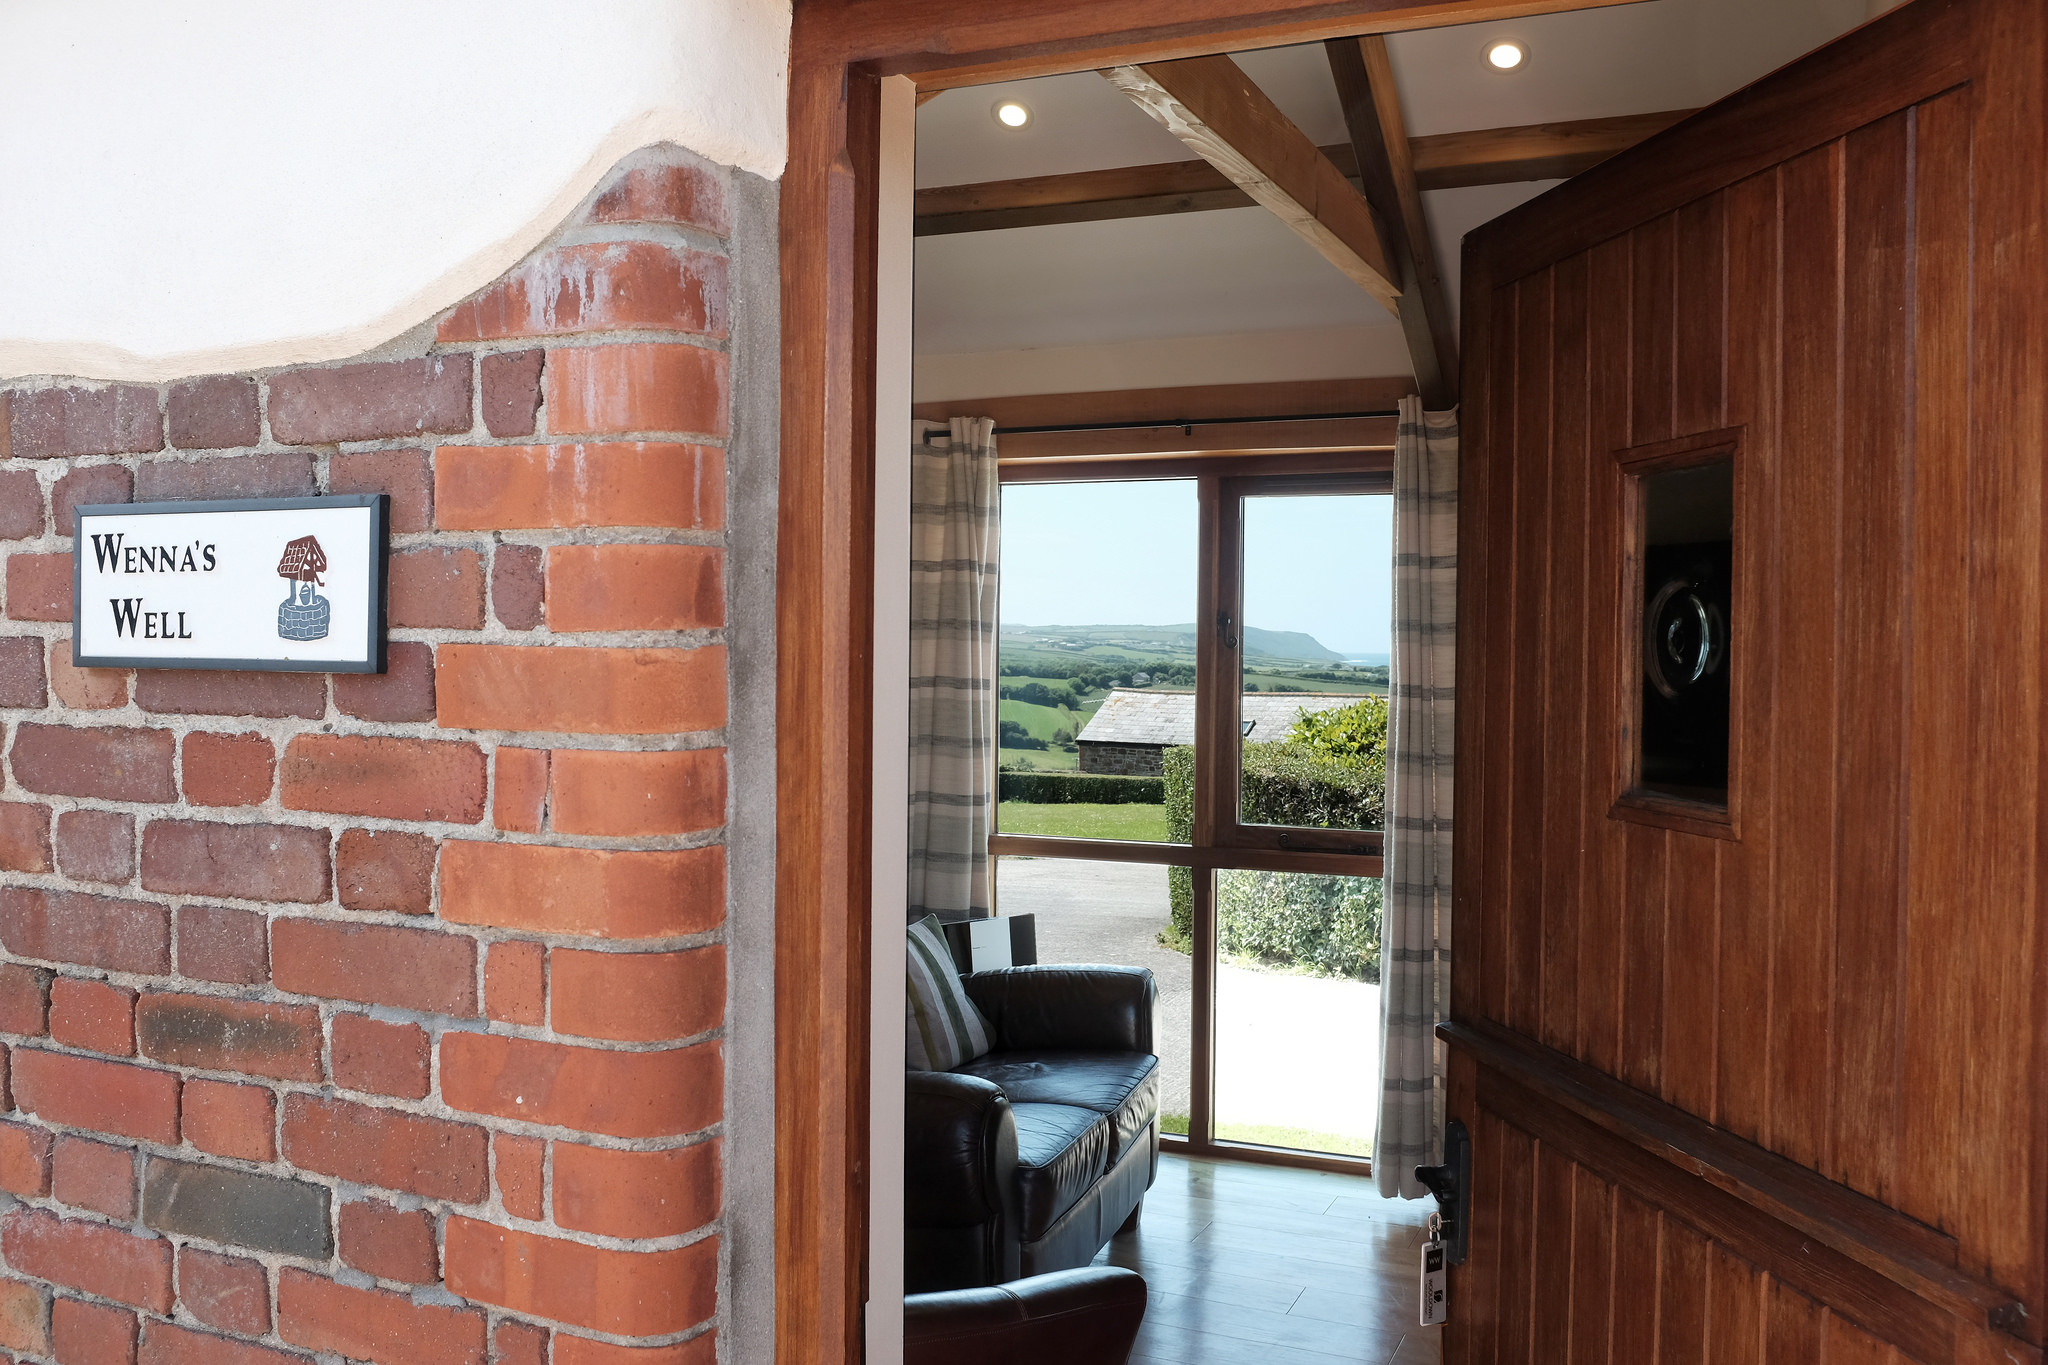 Wenna's Well - Romantic barn conversion for two